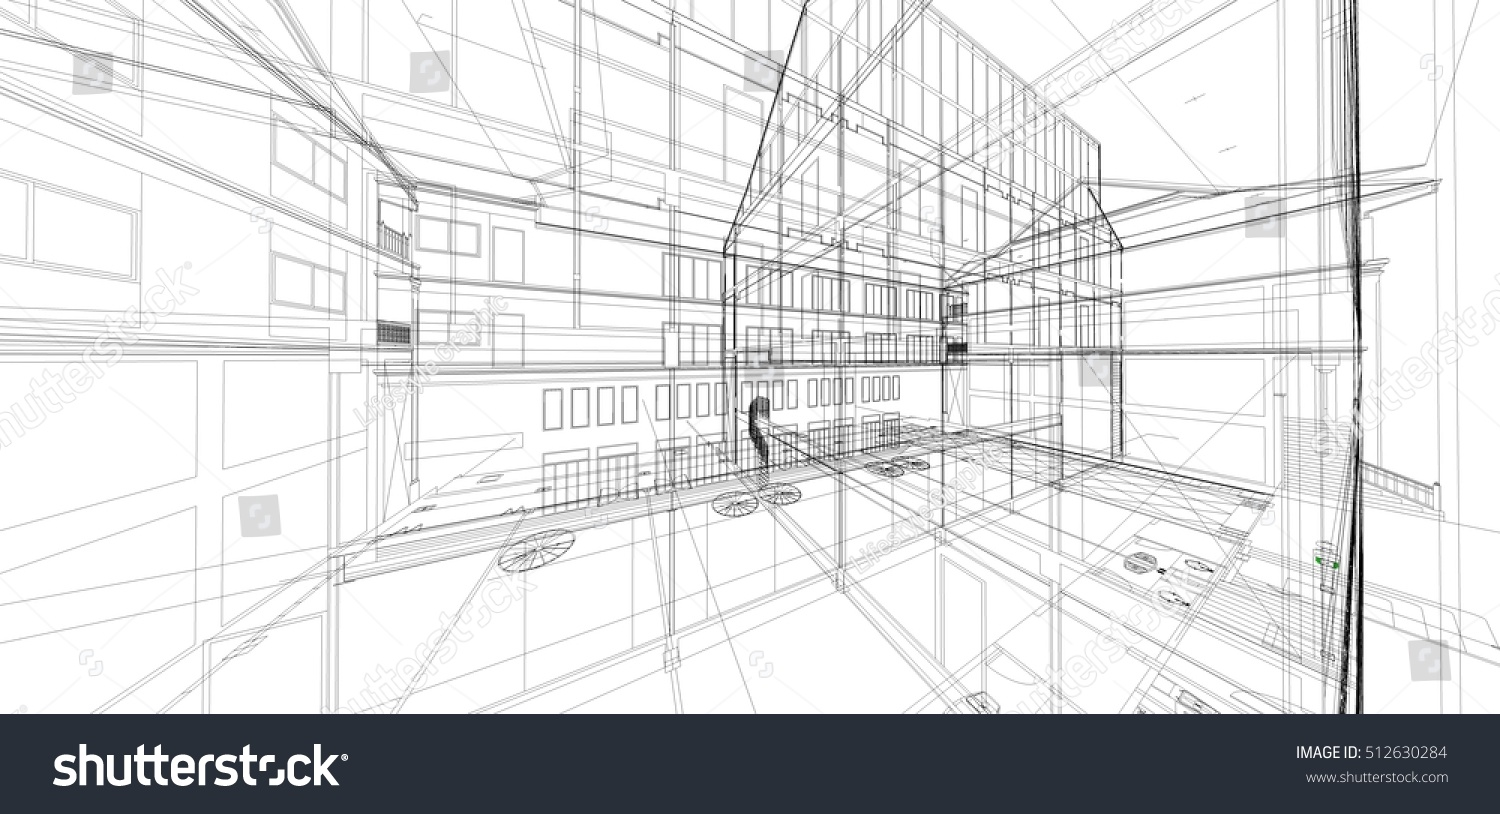 abstract 3 d render building wireframe constructionのイラスト素材